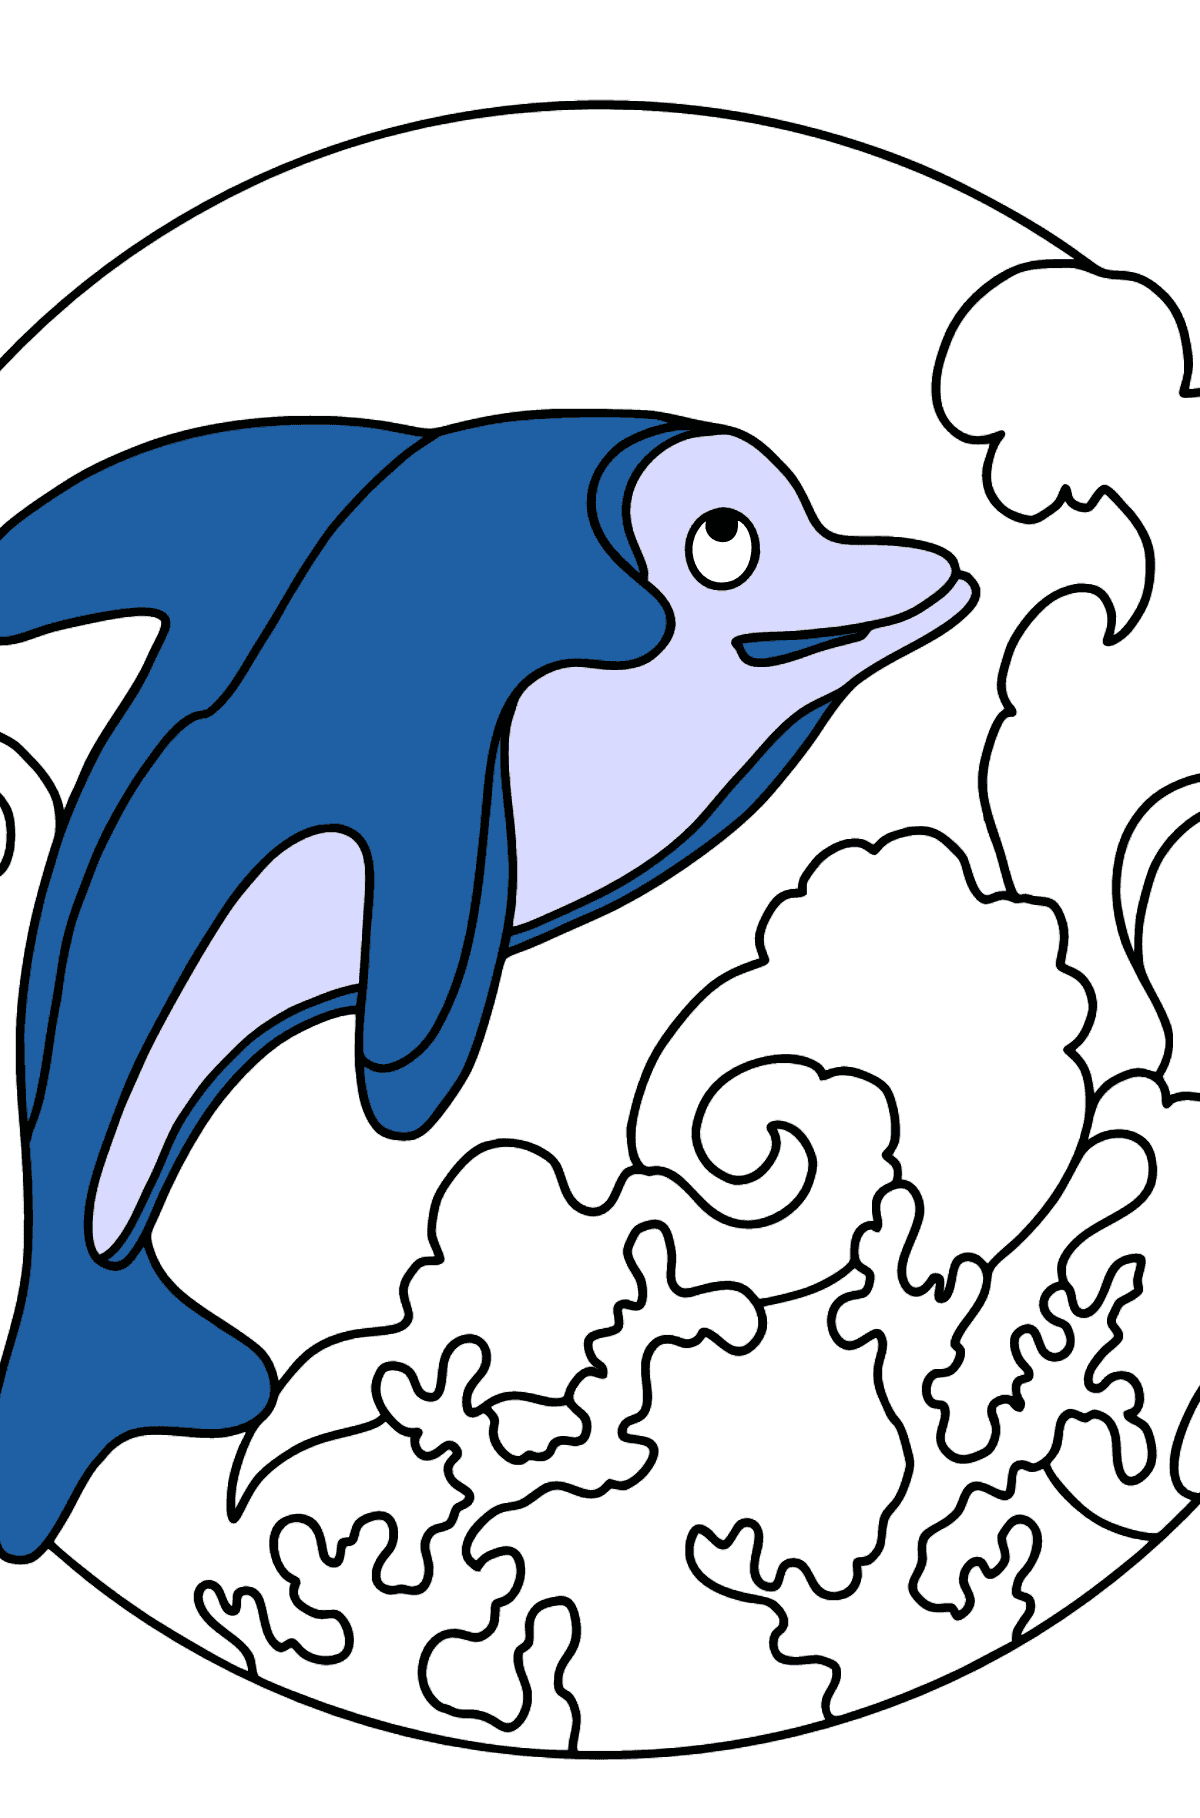 Coloring Page - A Dolphin, an Agile and Fast Predator - Coloring Pages for Kids